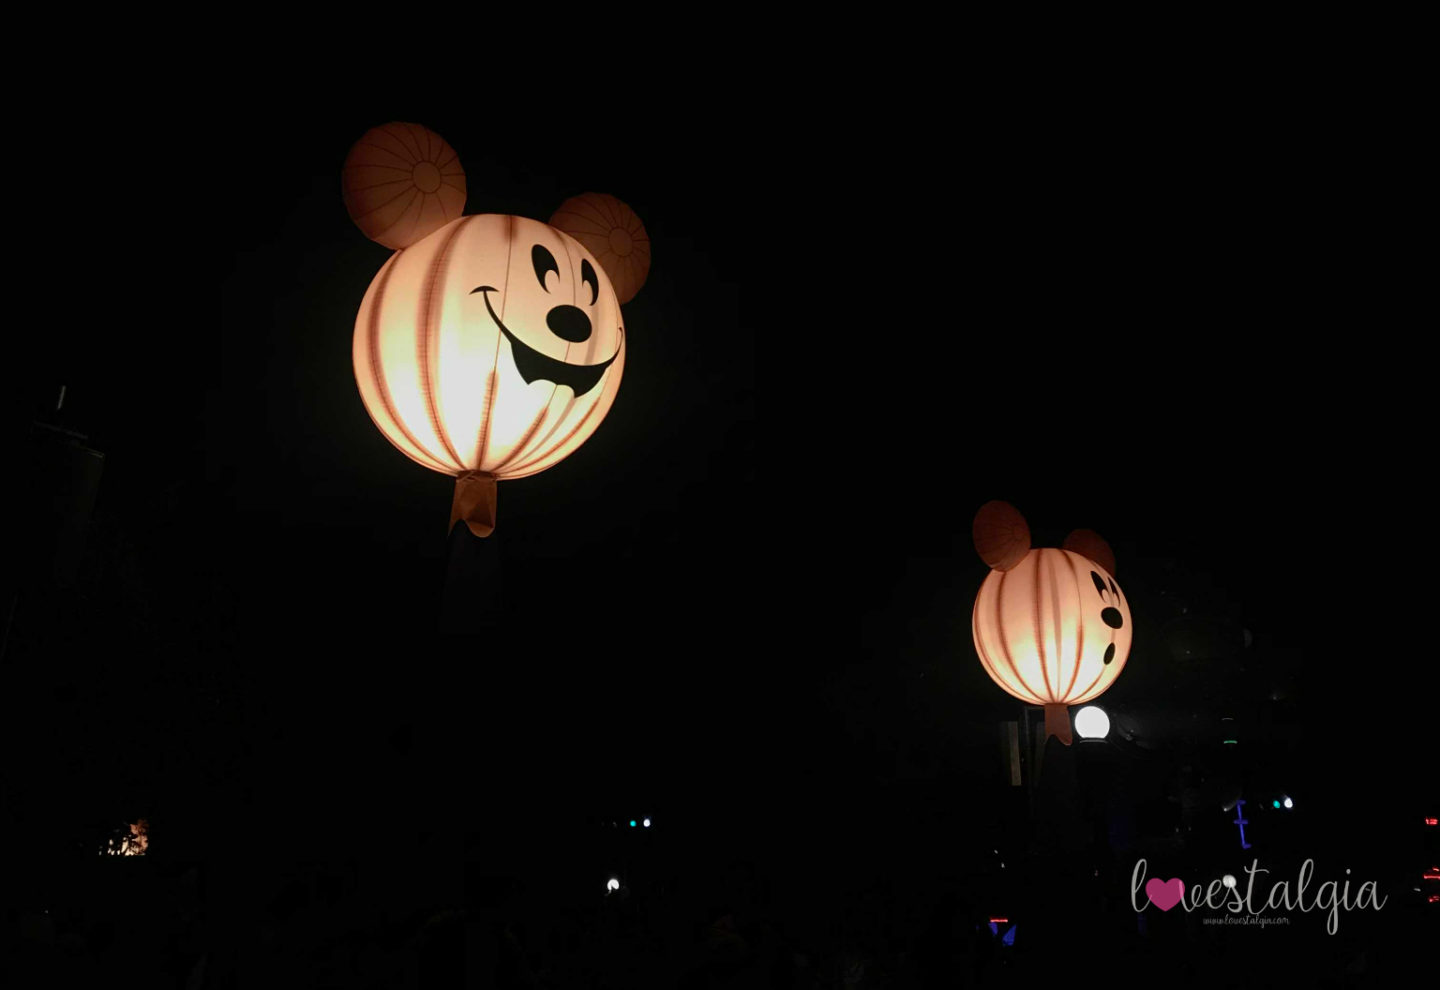 Why An Annual Passholder Should Attend Mickey's Halloween Party